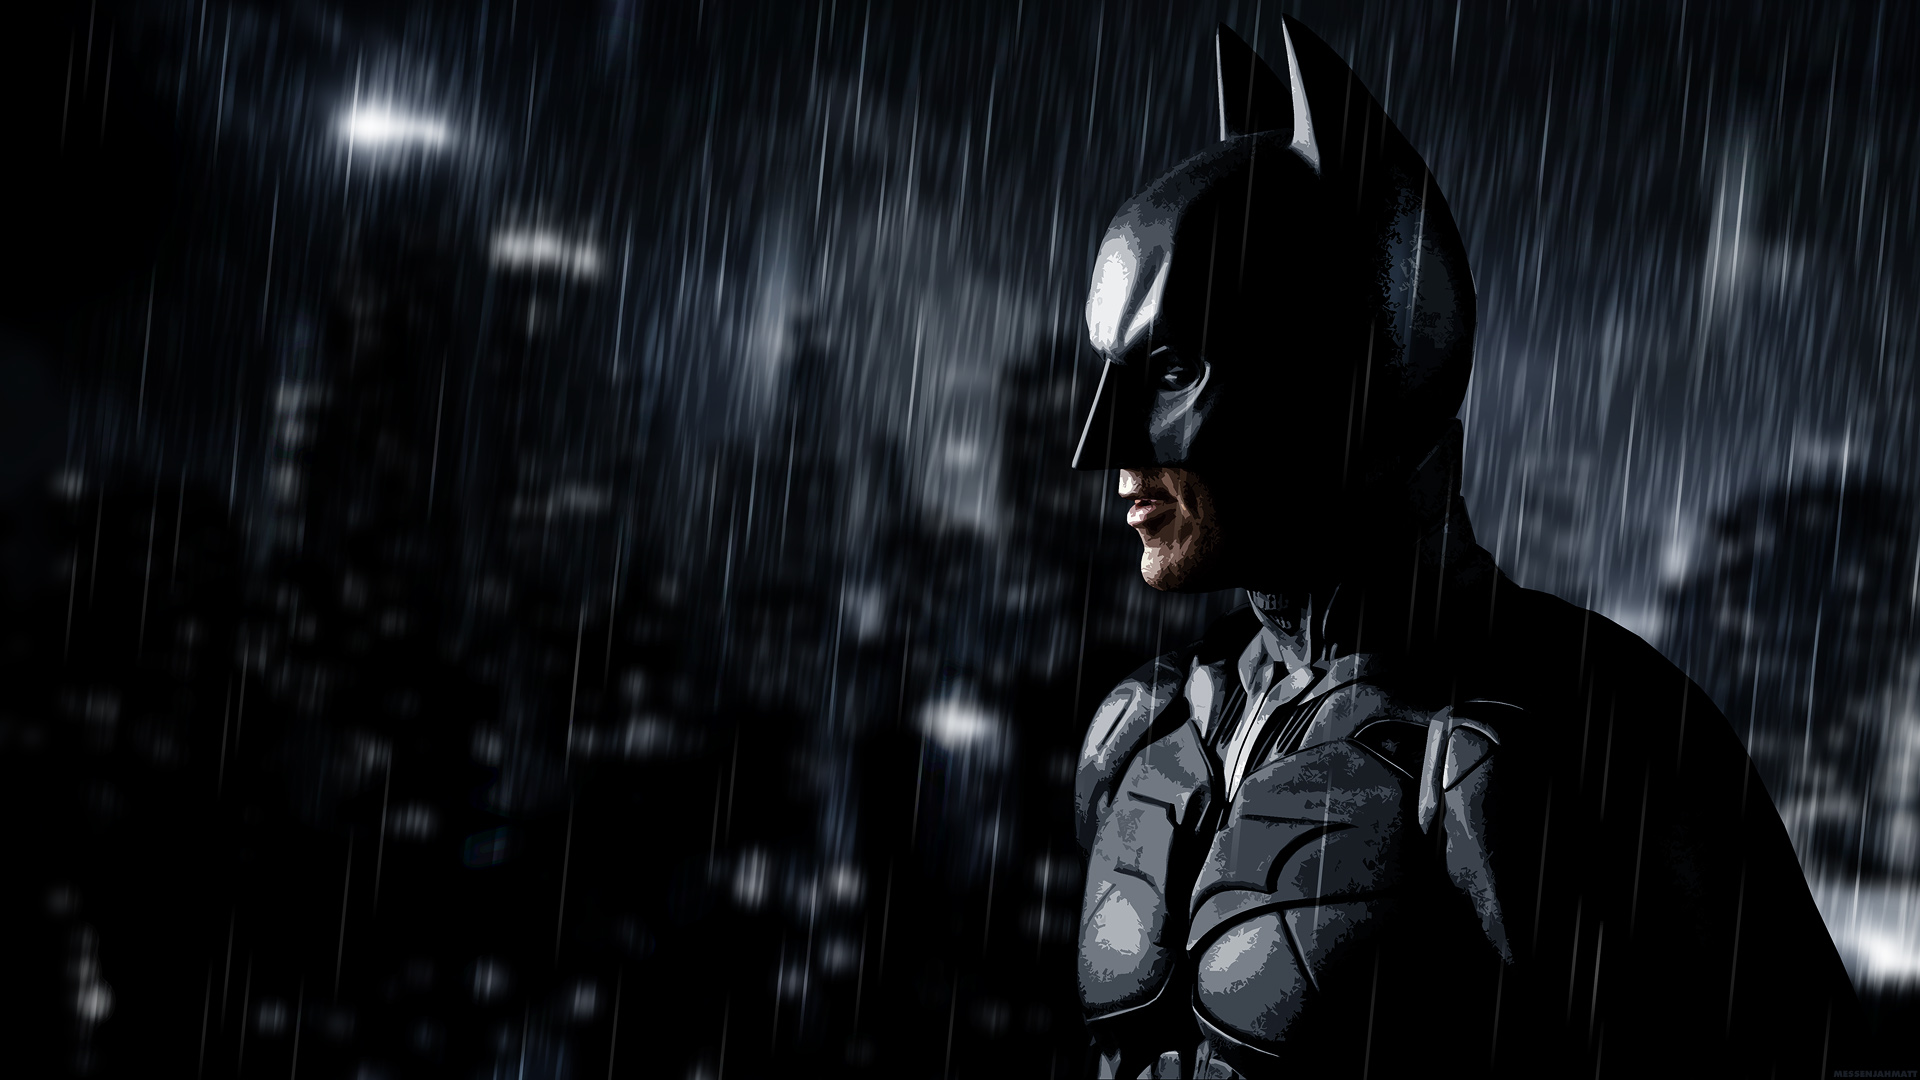 Batman background image Batman wallpapers 1920x1080